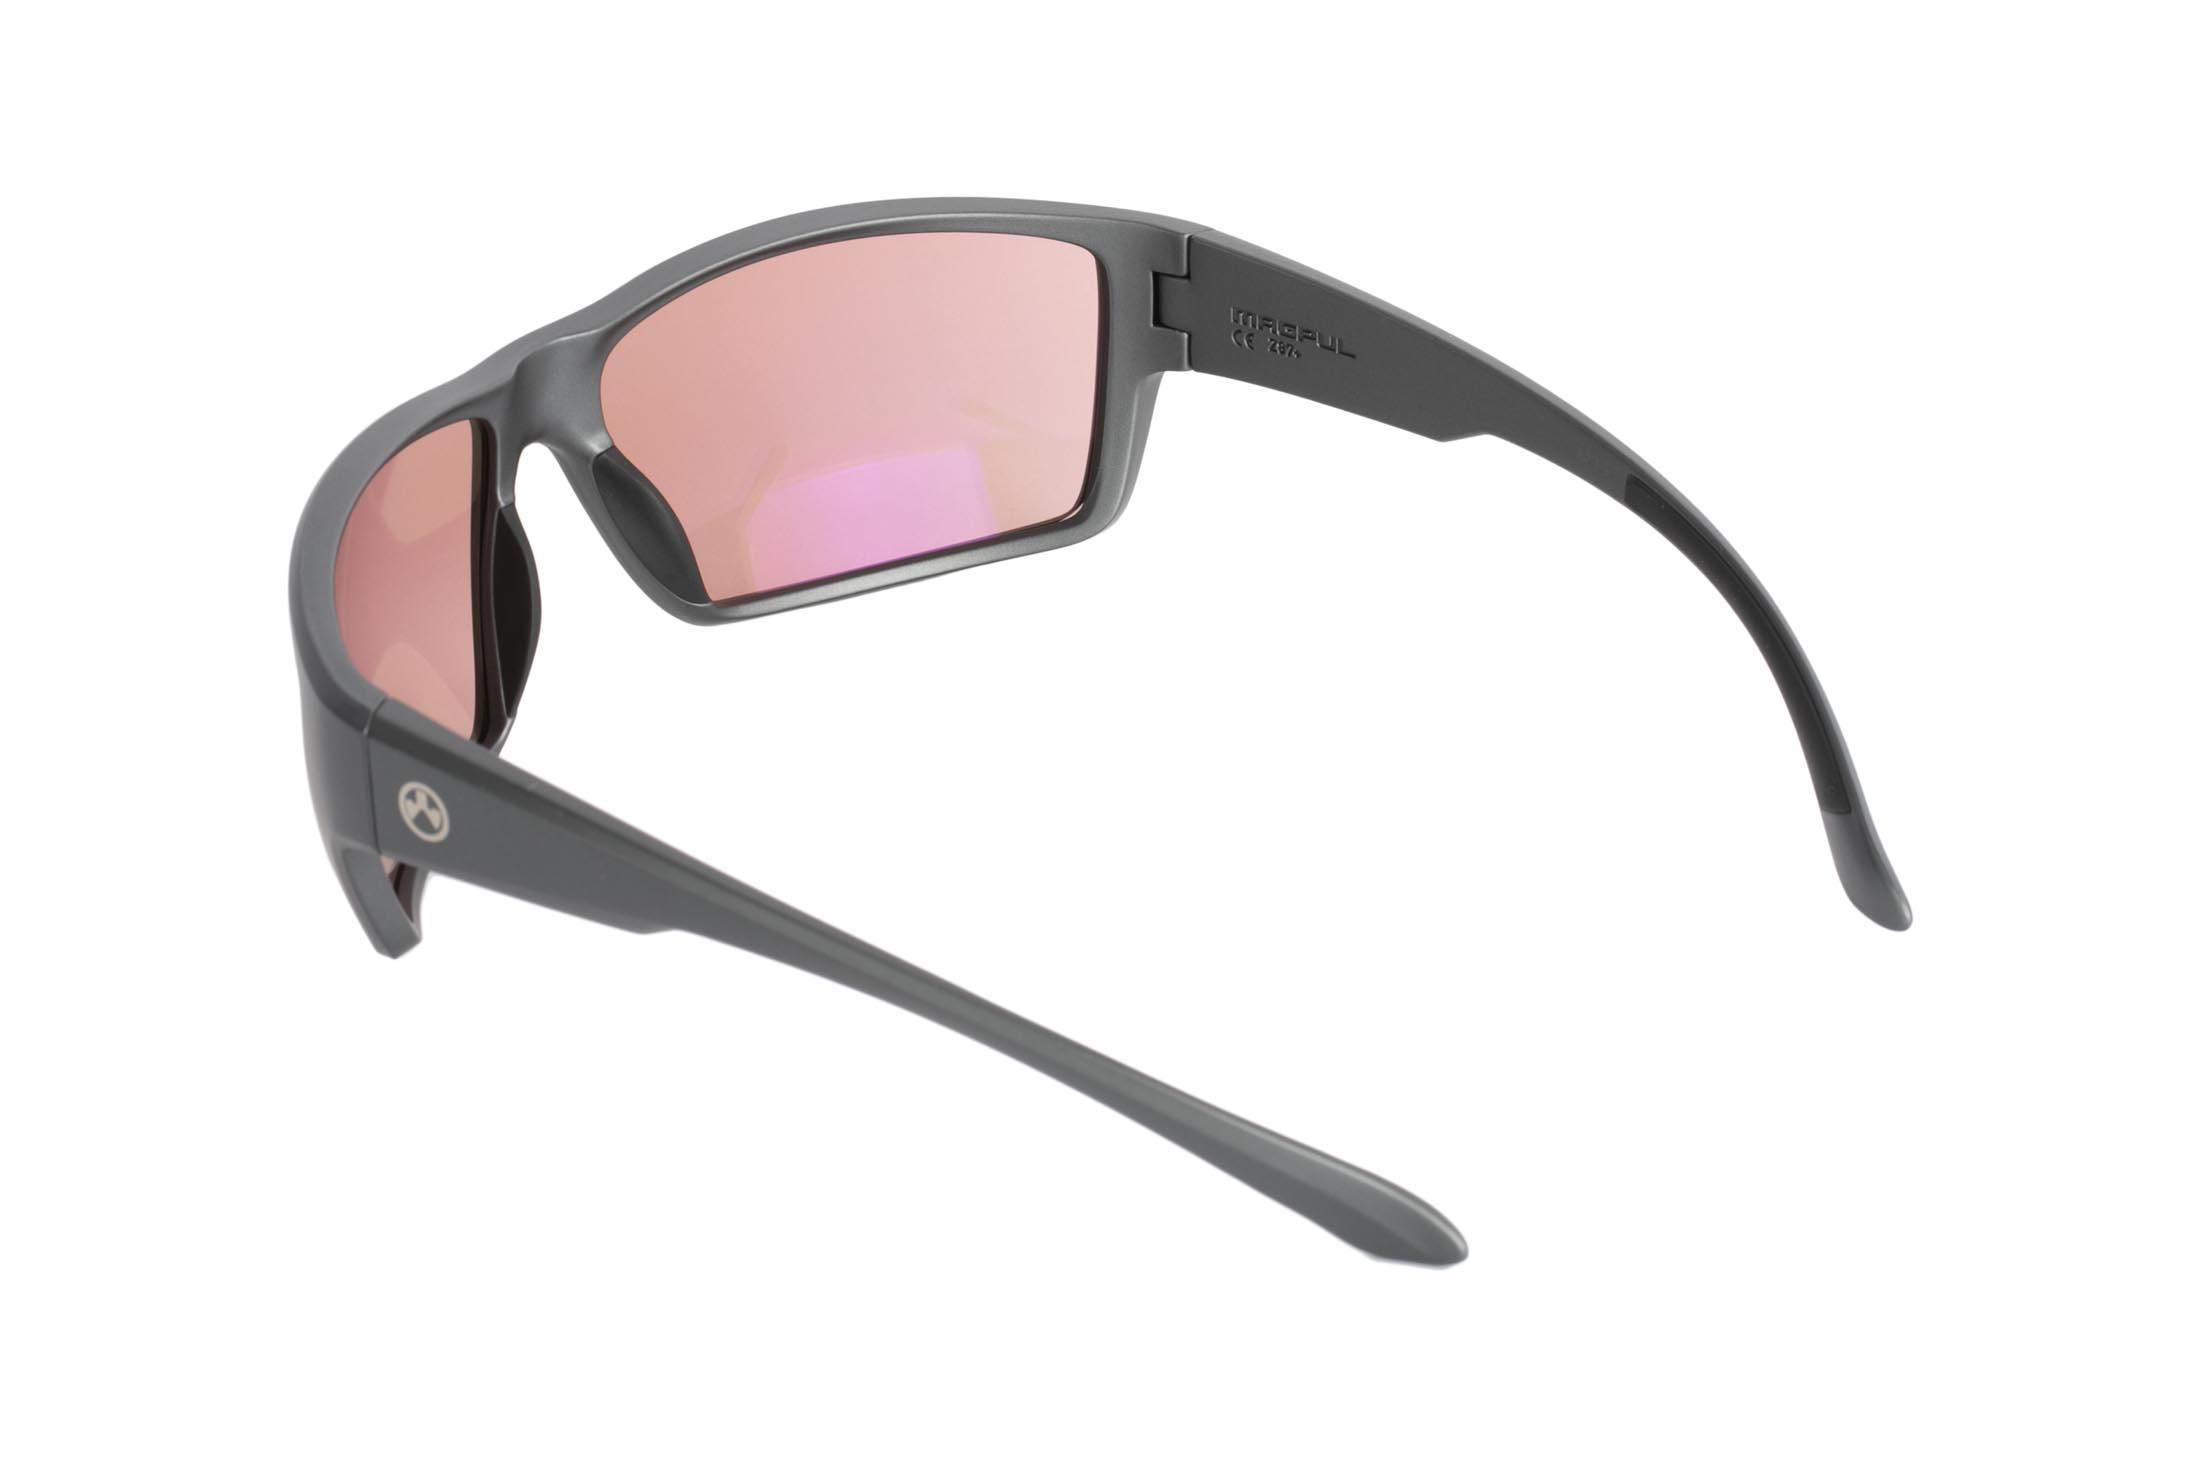 Magpul Terrain gray frame eye protection with rose lenses are designed to complement over-ear hearing protection